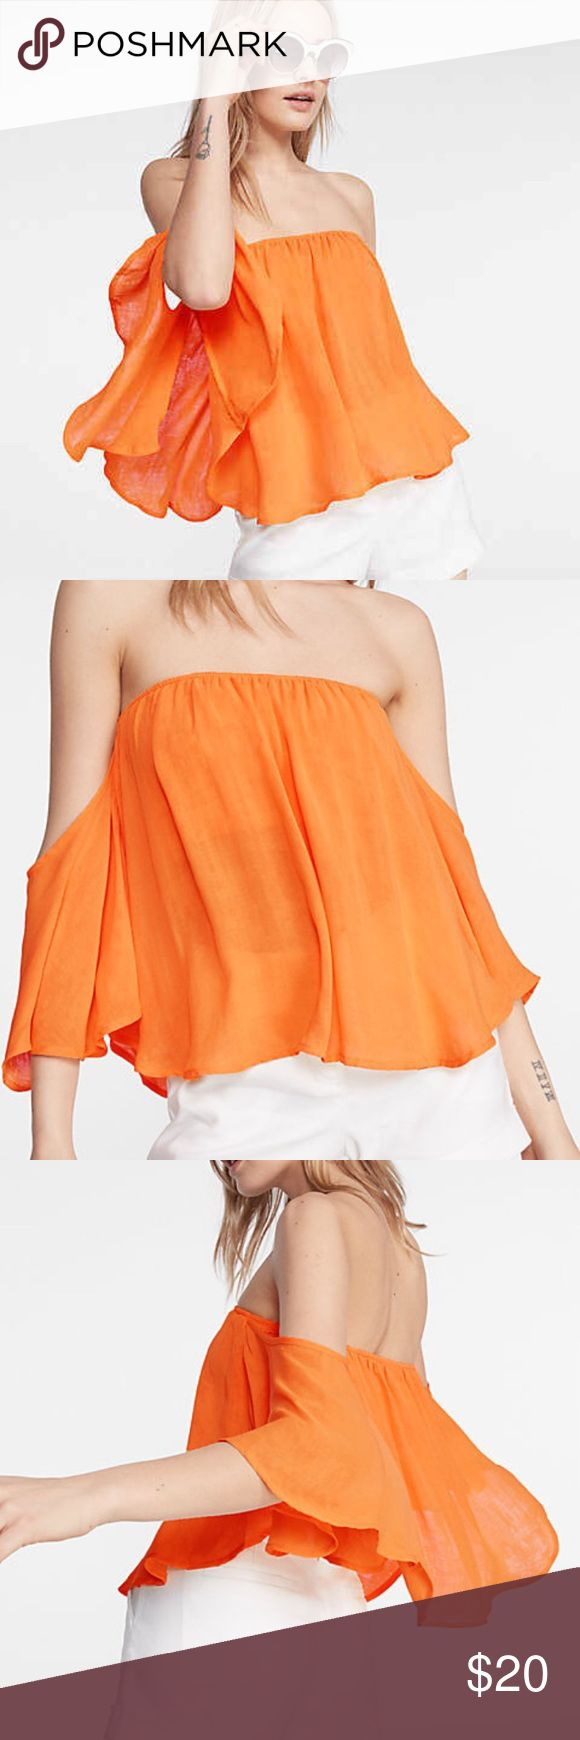 Express off the shoulder top nwot small Never been worn. Reviews are from Express website where this top is still for sale for $49.90. Express Tops Blouses